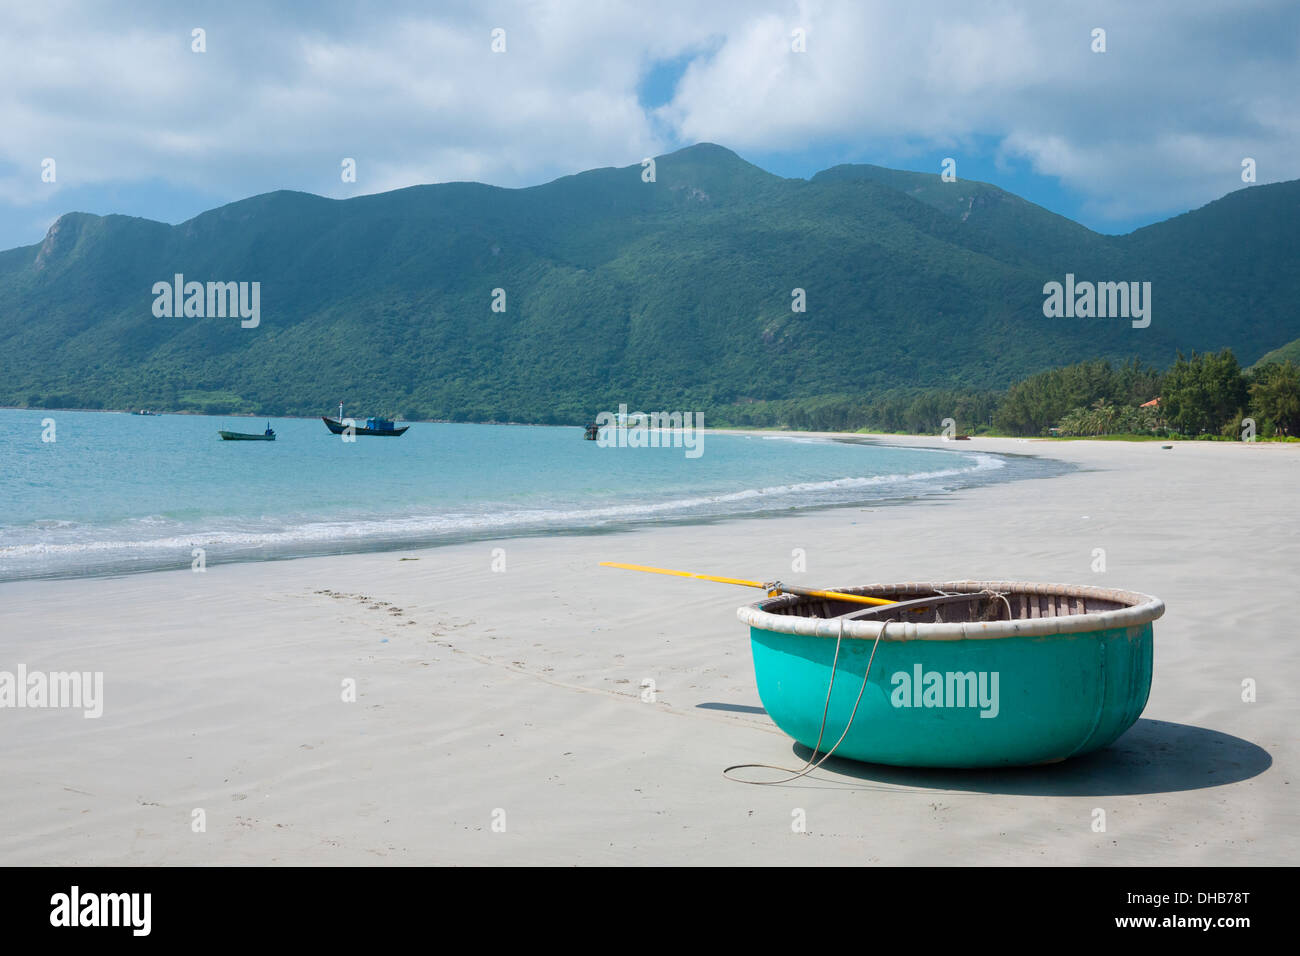 A view of a turquoise, circular rowboat on An Hai Beach on Con Son Island, one of the Con Dao Islands in Vietnam. - Stock Image